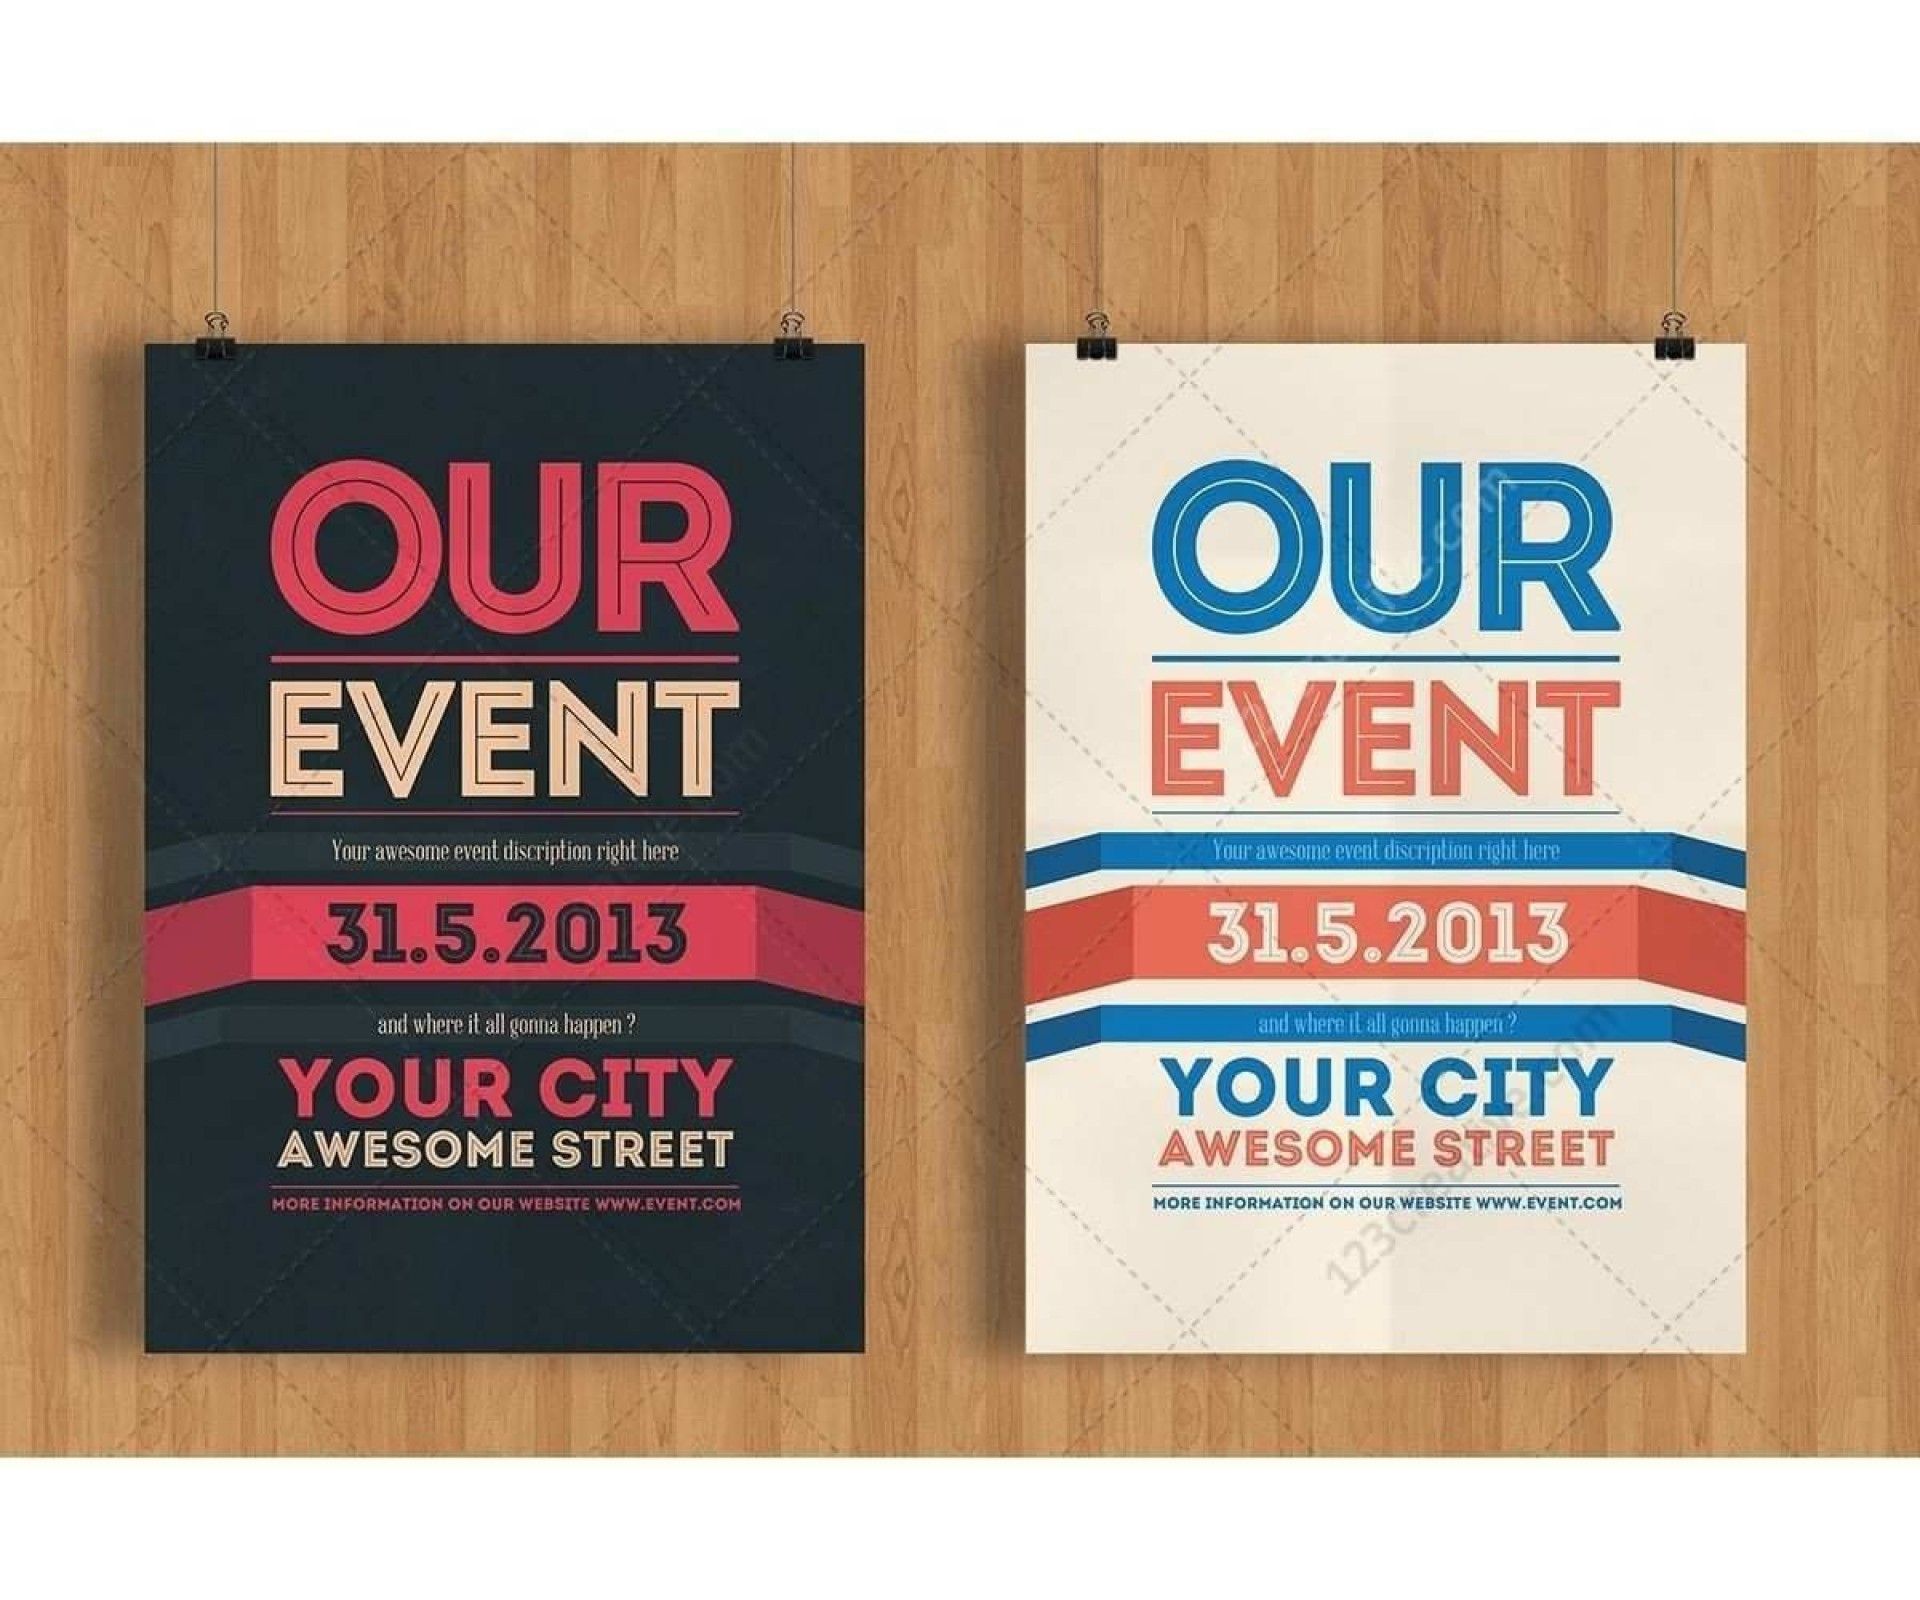 002 Impressive Event Flyer Template Free High Def  Word Download Psd1920